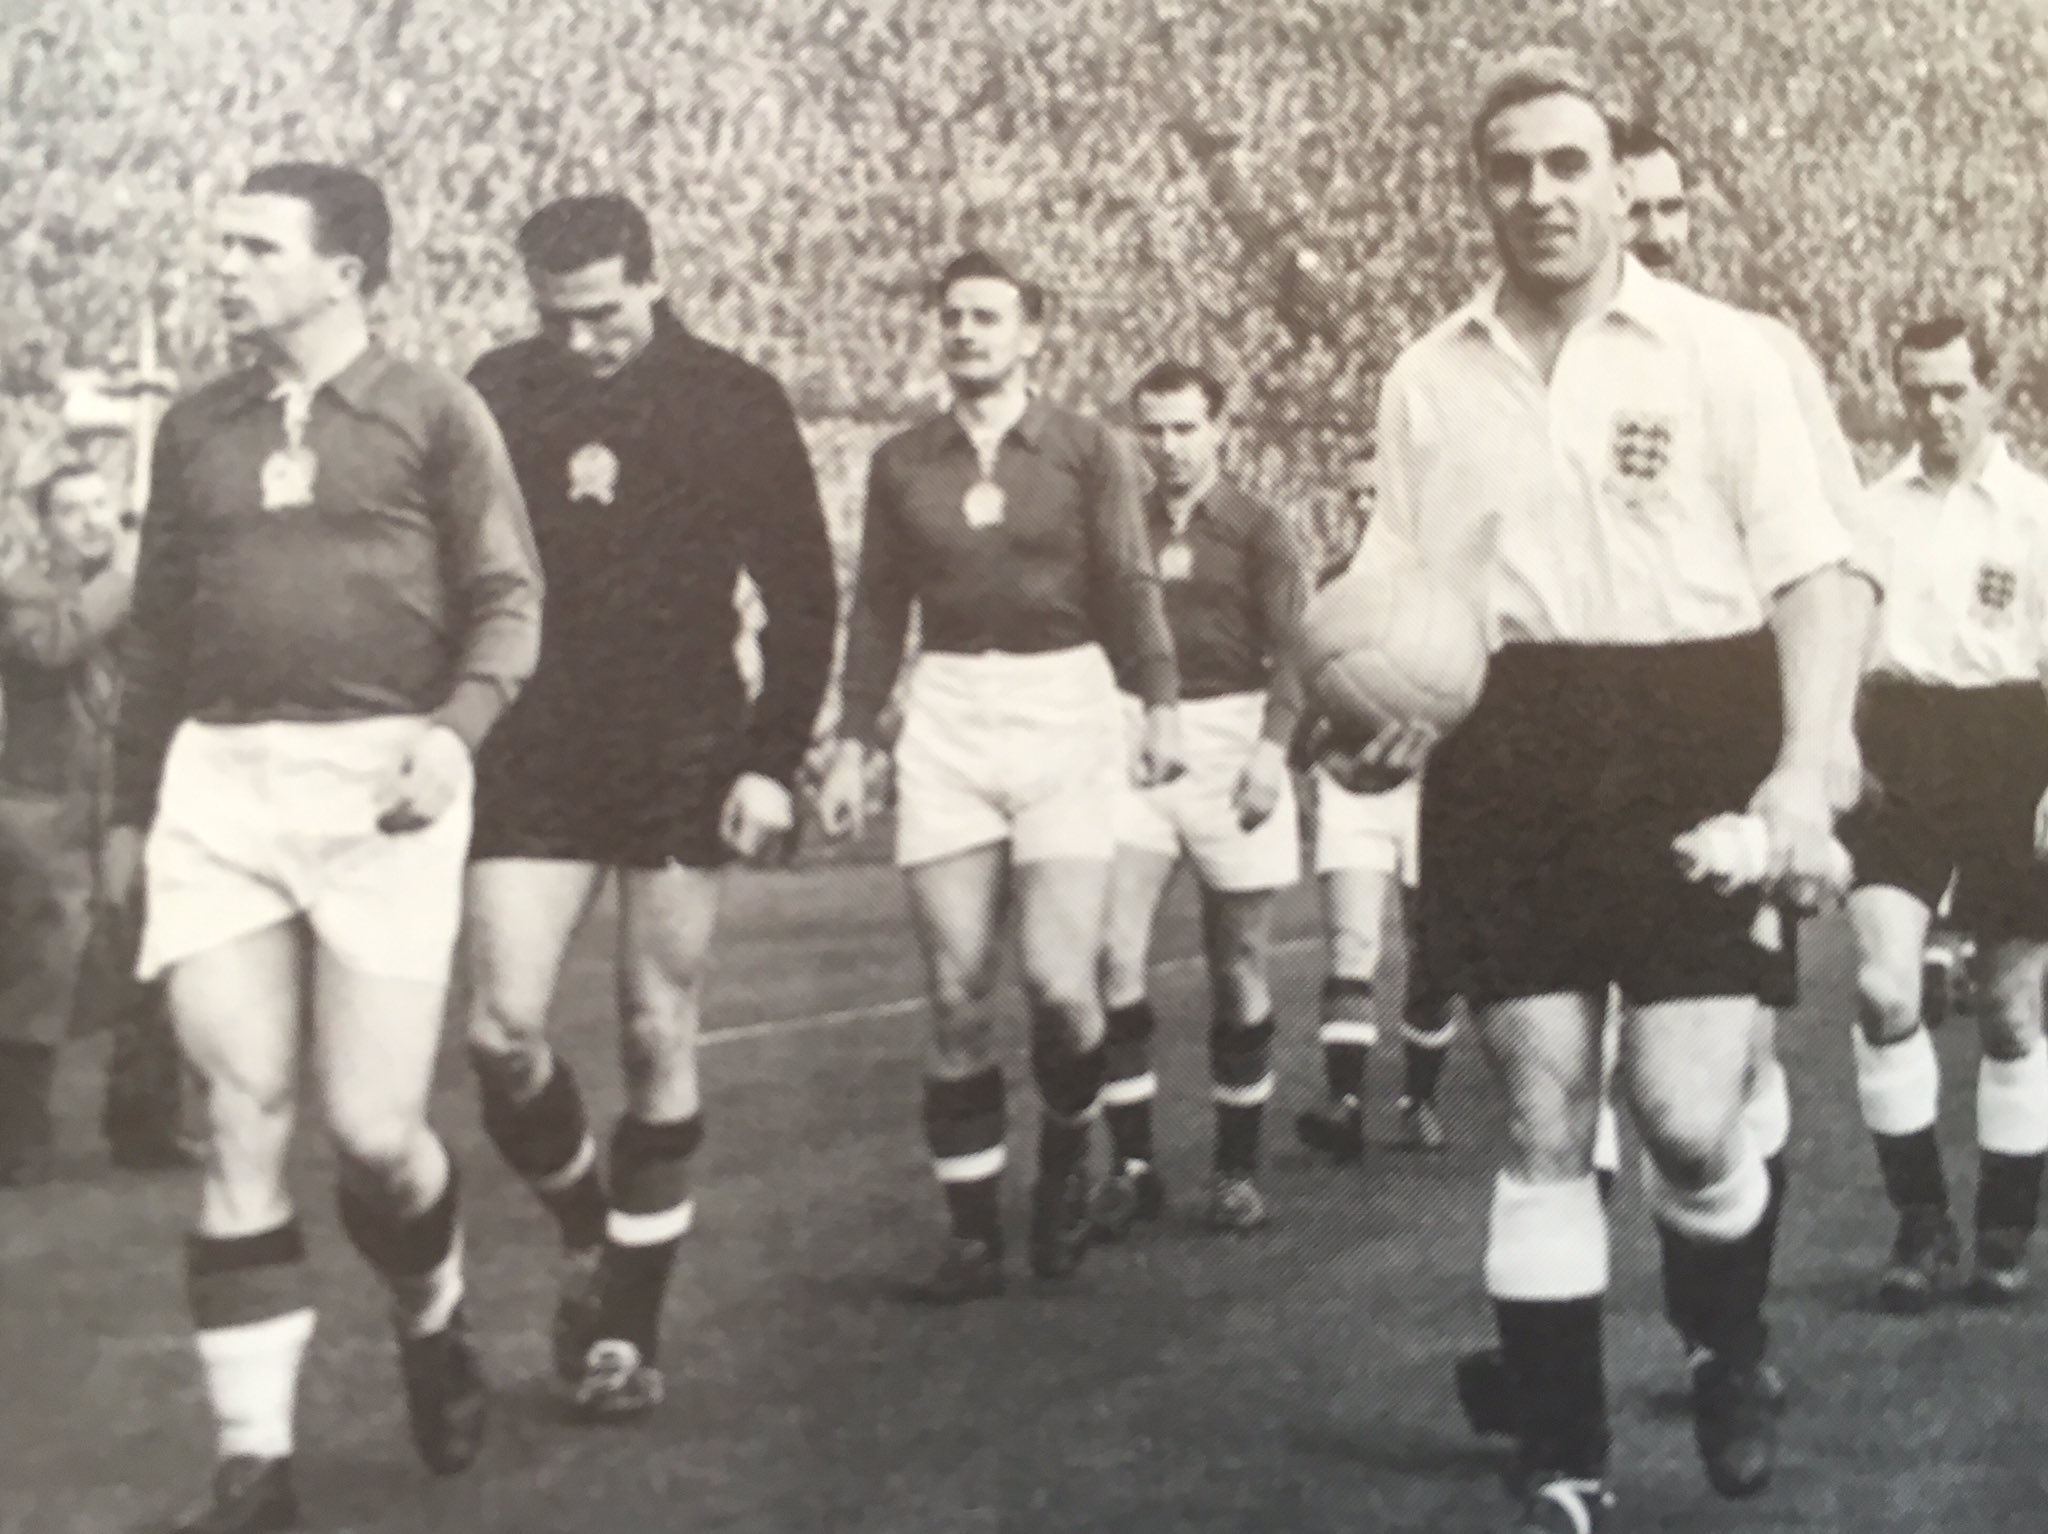 """The League Magazine on Twitter: """"England v Hungary 1953 Ferenc Puskas and Billy  Wright lead the teams out https://t.co/vQl7E8YUeG"""" / Twitter"""